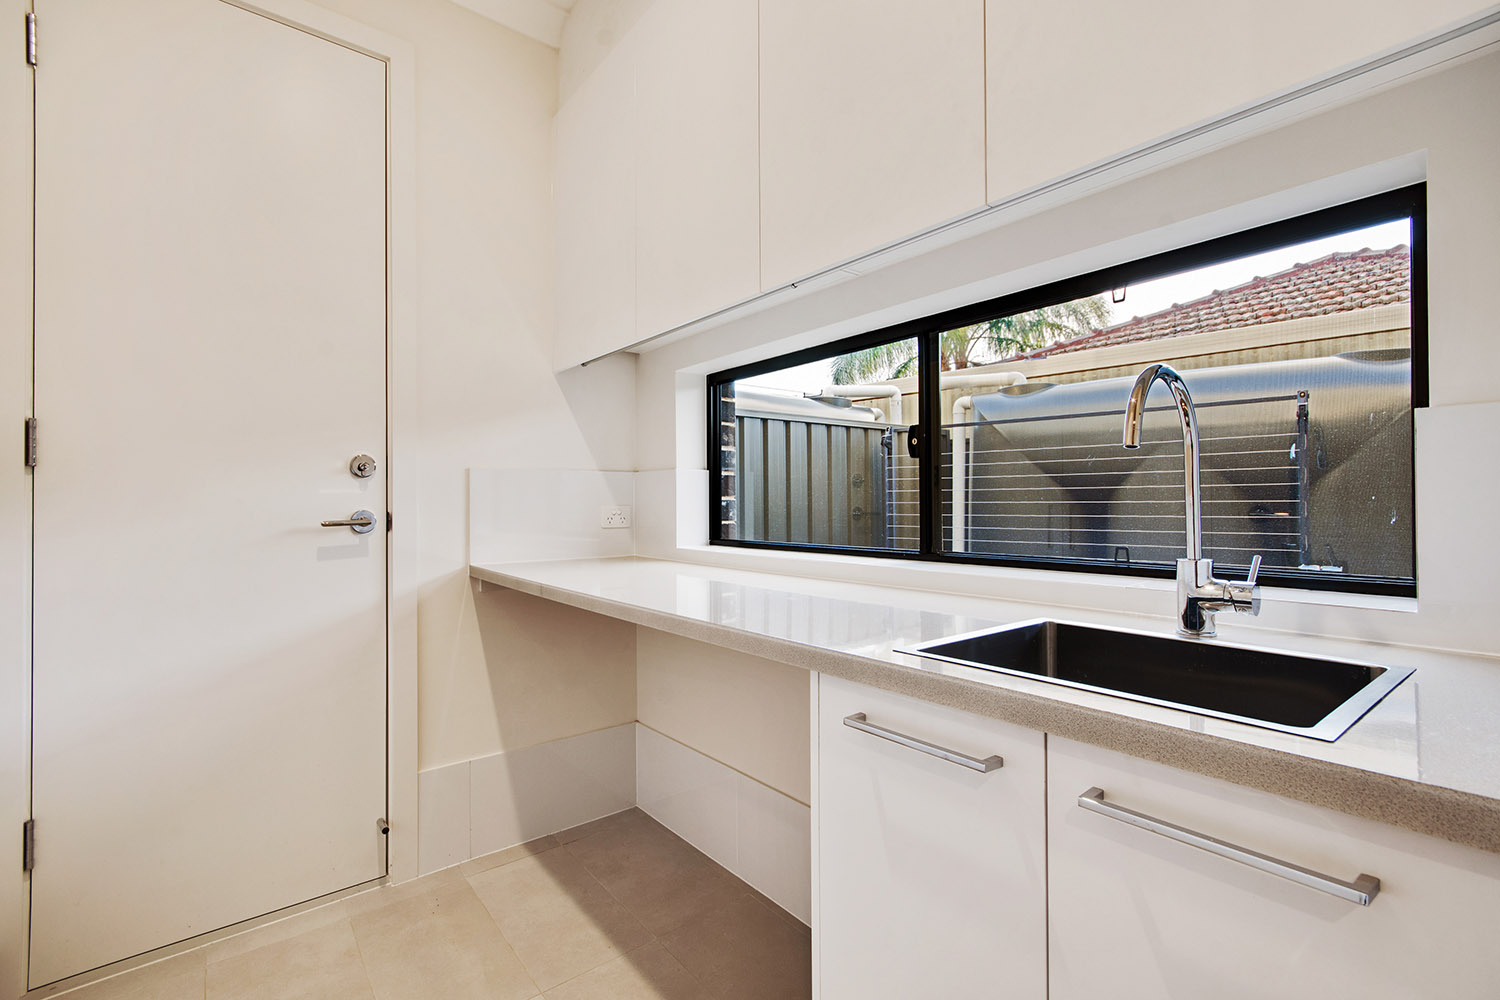 All SOLD – Amanda Street – Mills Street Campbelltown now commencing